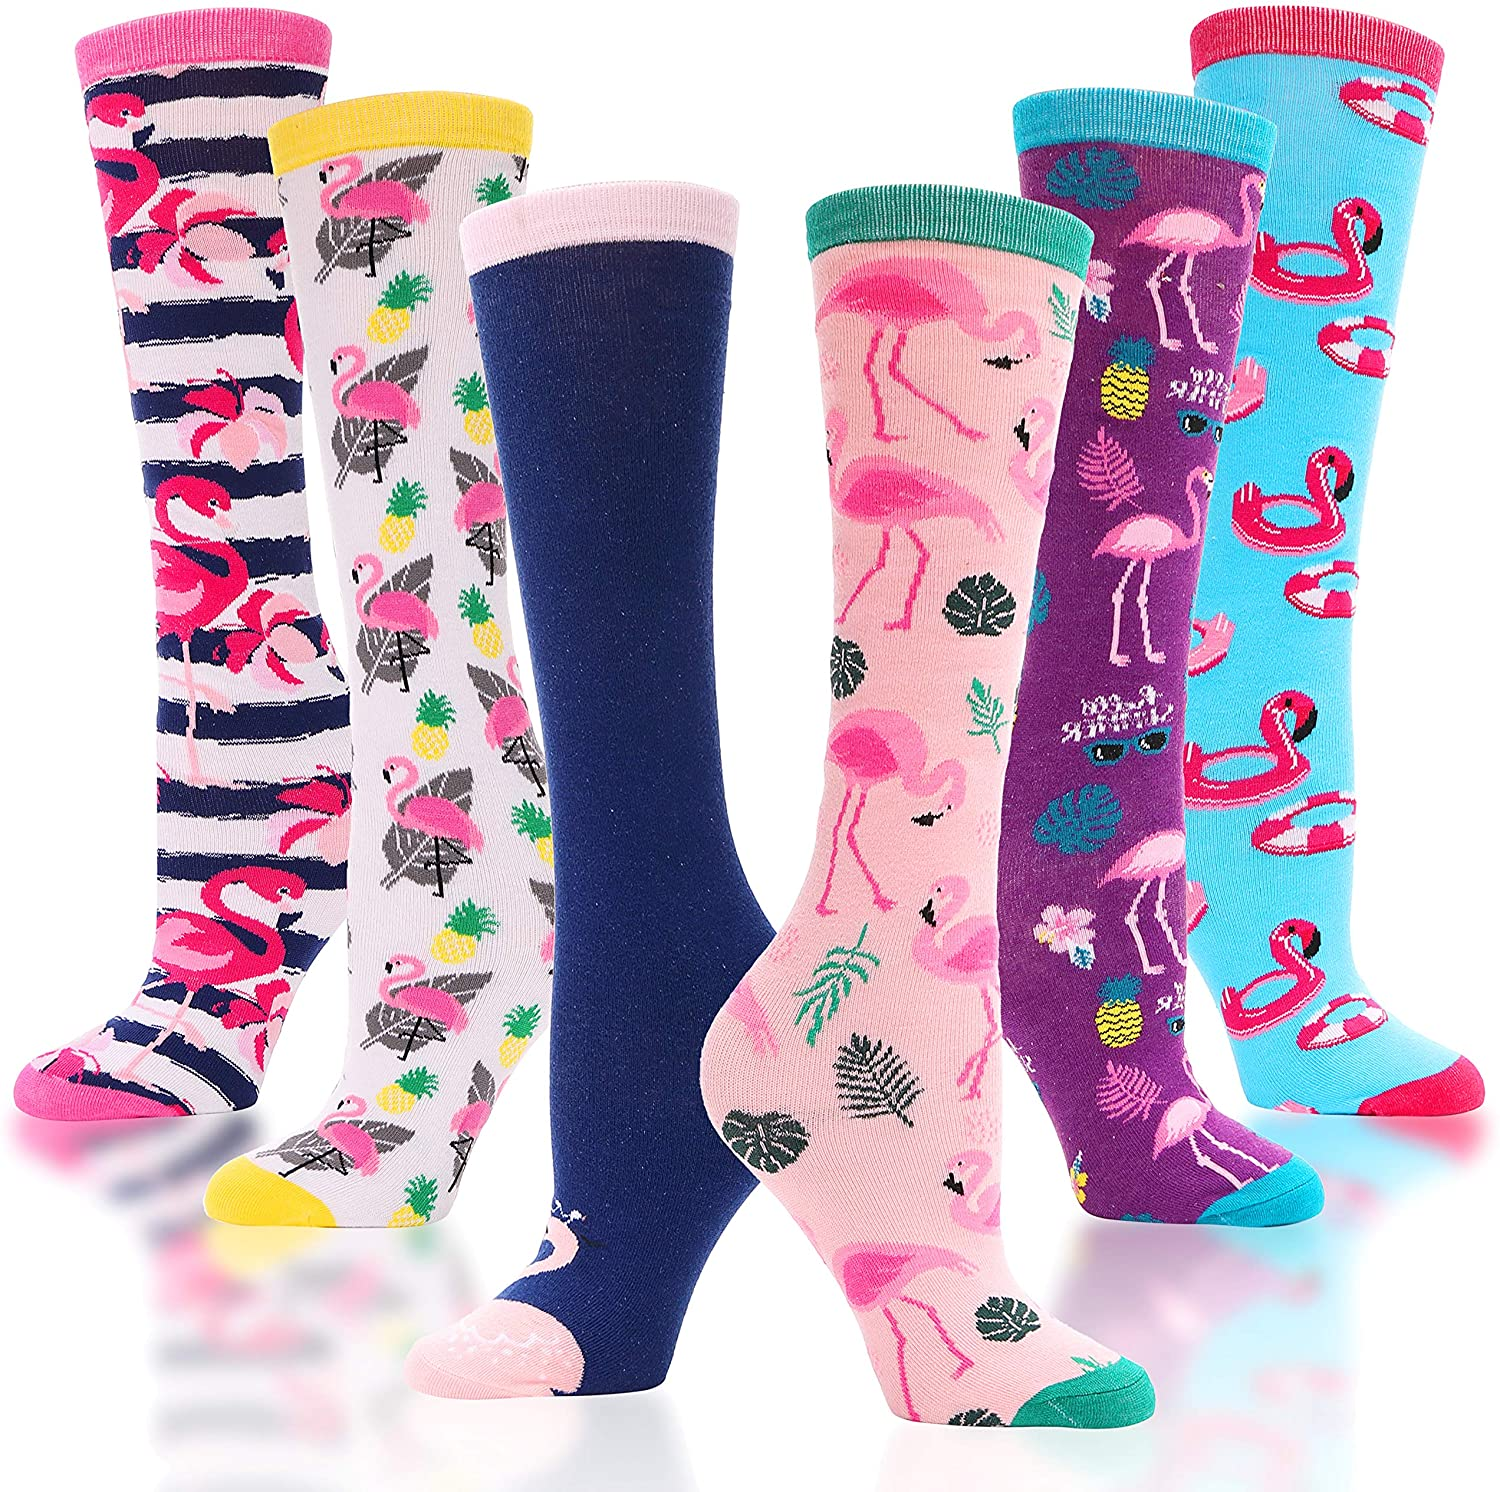 Girls Knee High Socks Cute Unicorn Pattern Novelty Funny Cotton Socks for Kids 6 Pairs